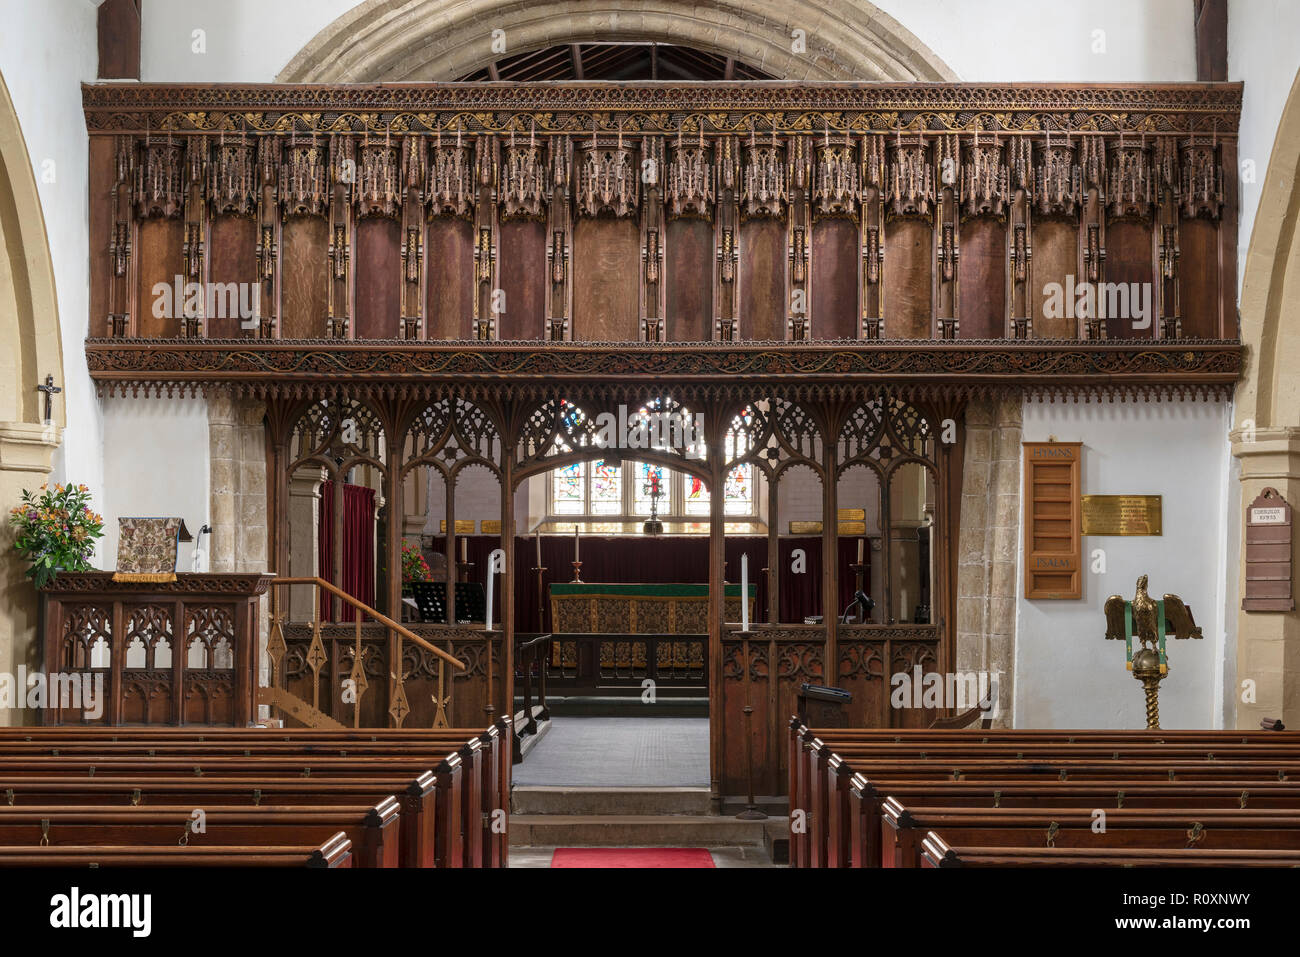 An intricately carved 16th century Rood Screen preserved in St. Oswald's Church, Flamborough, Yorkshire, UK Stock Photo